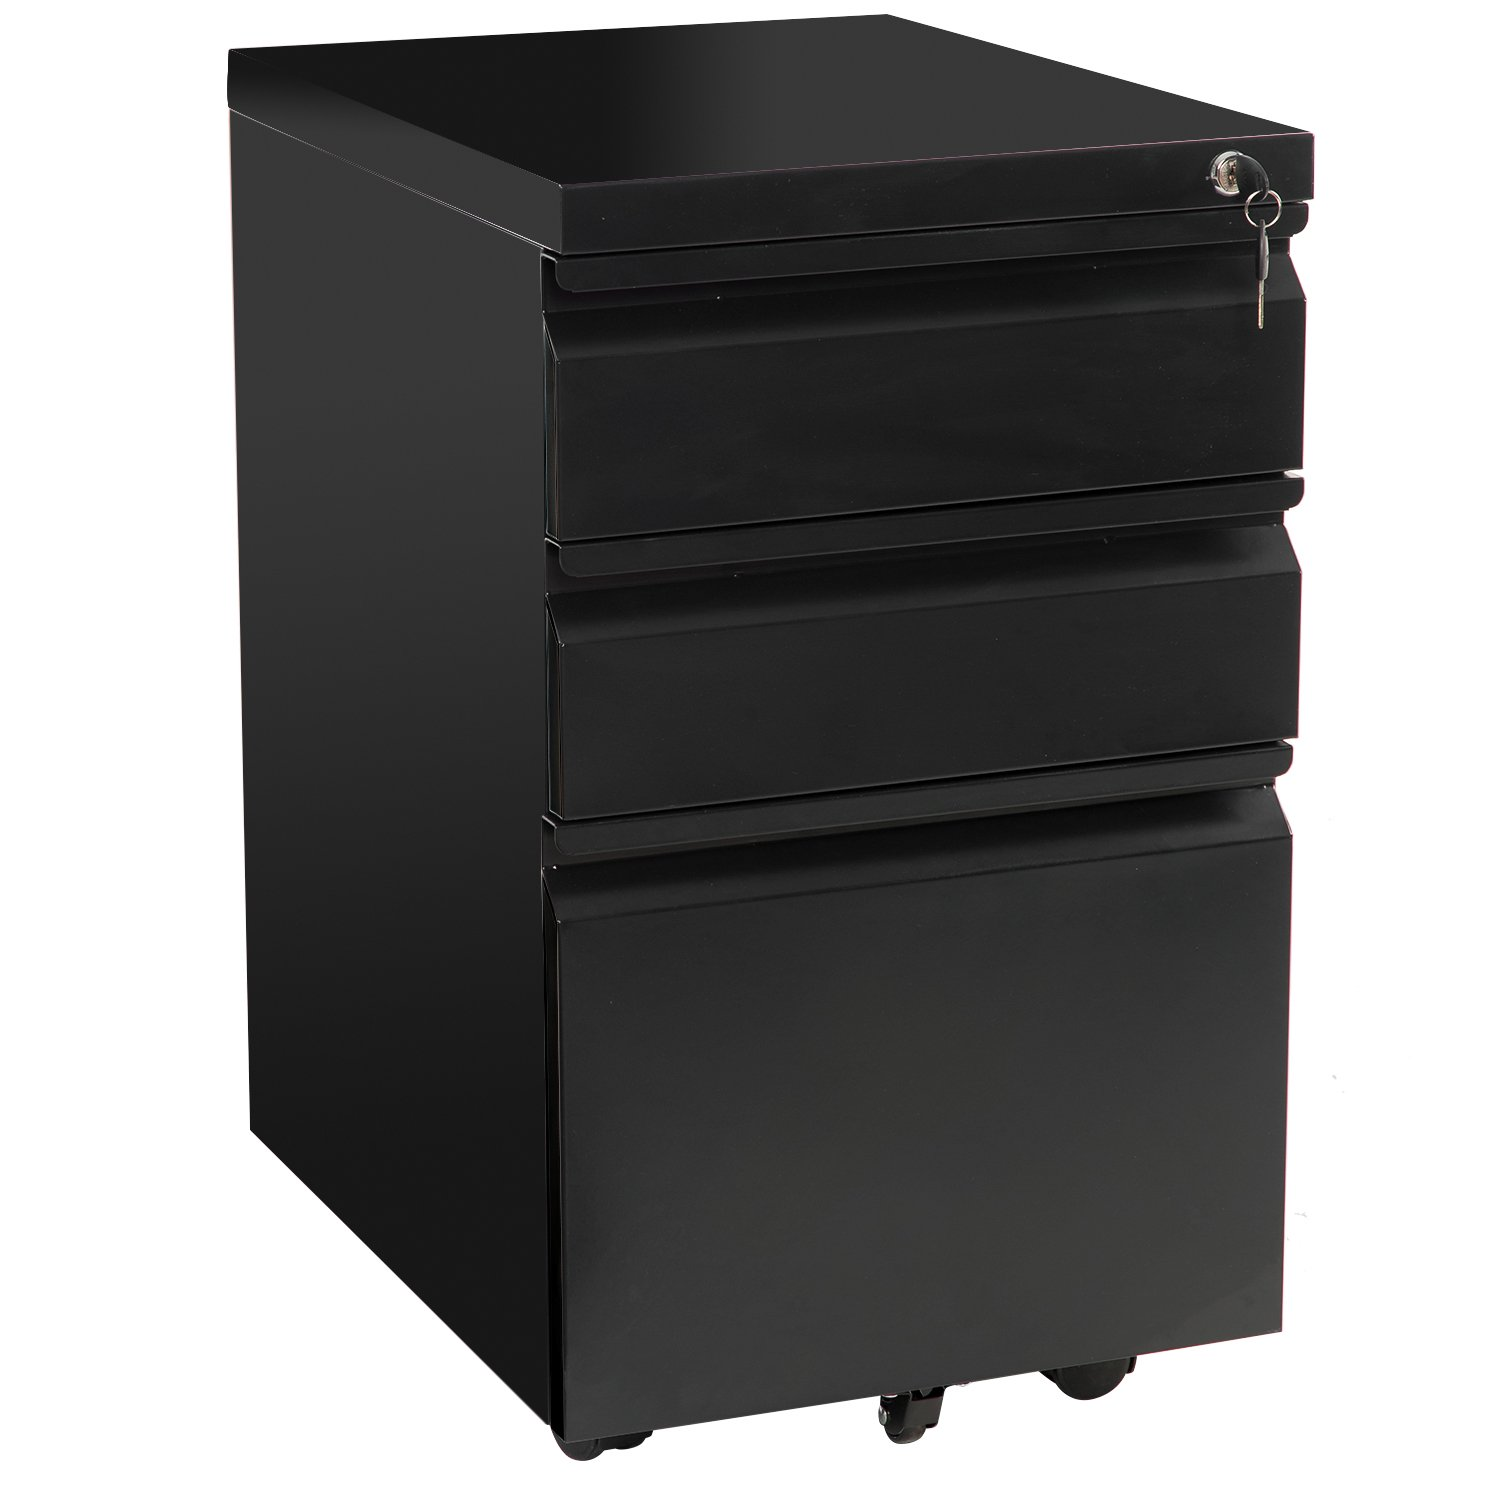 Merax 3-Drawer Mobile File Cabinet with Keys - Fully Assembled Except Casters (Black)